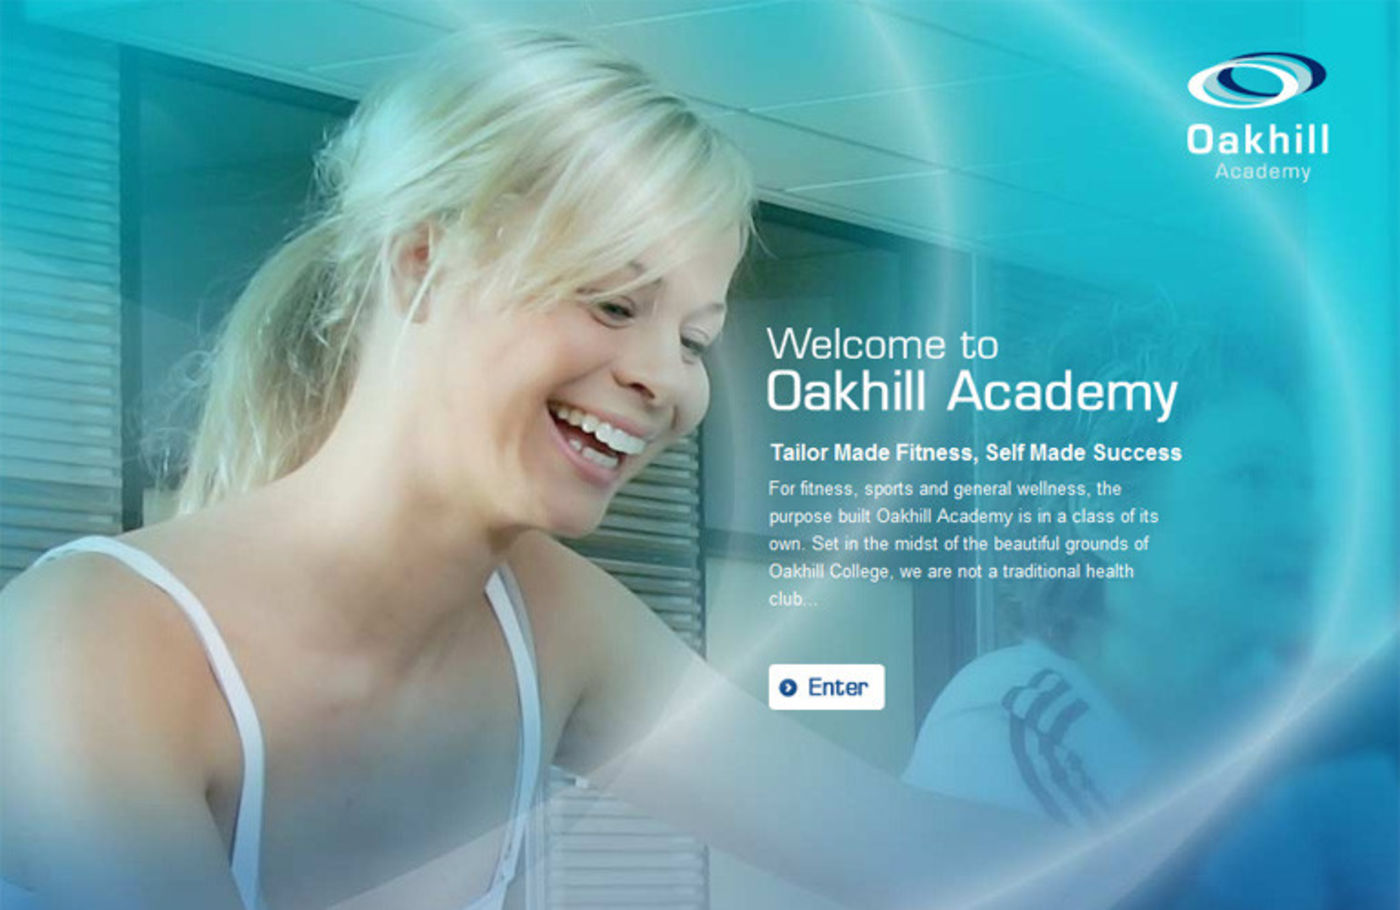 Oakhill Academy Welcome